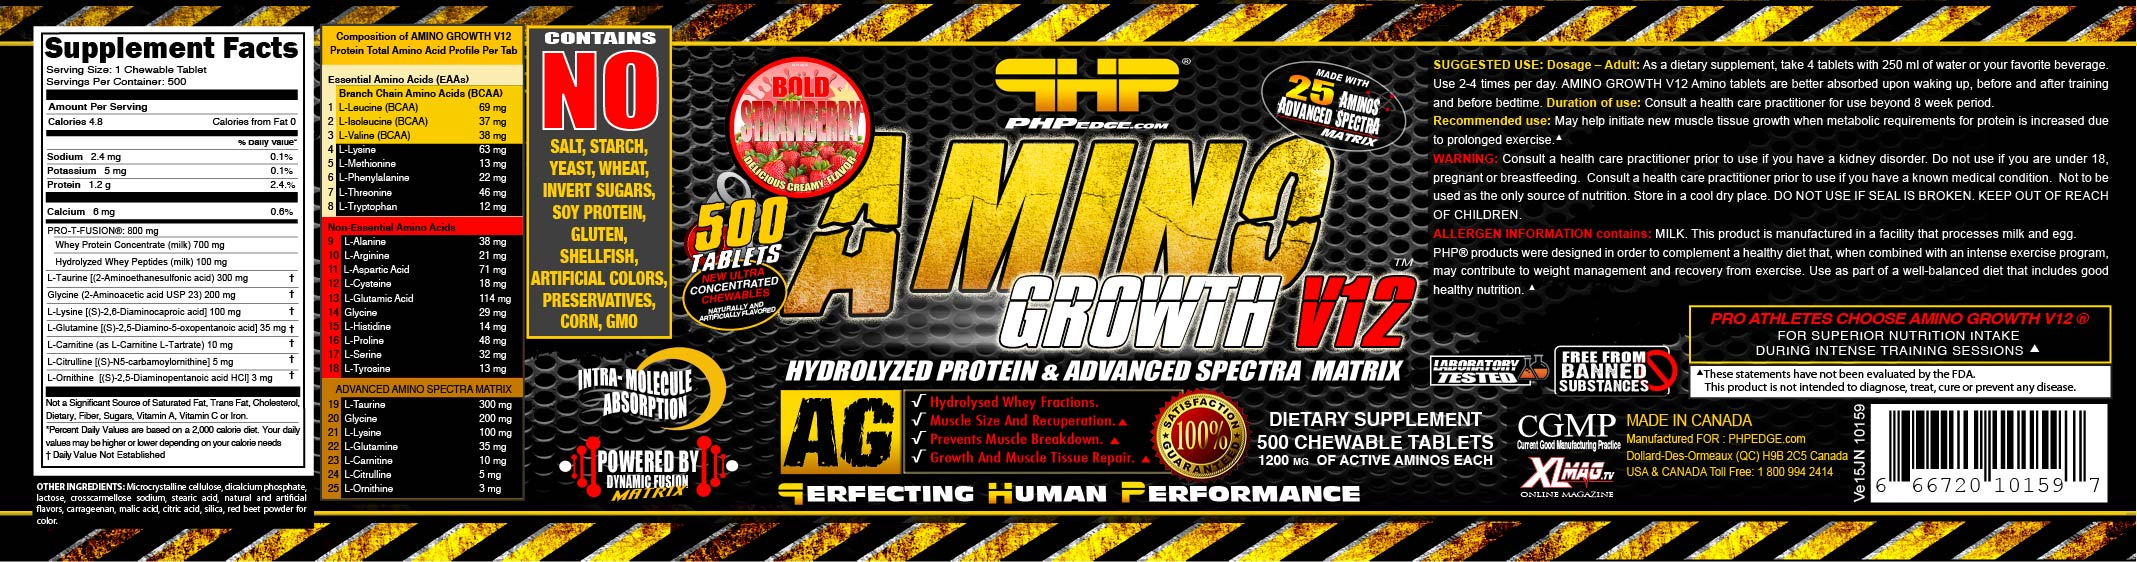 AMST0500-1200-10159 AMINO GROWTH V12 ® BOLD STRAWBERRY USA VE15JN